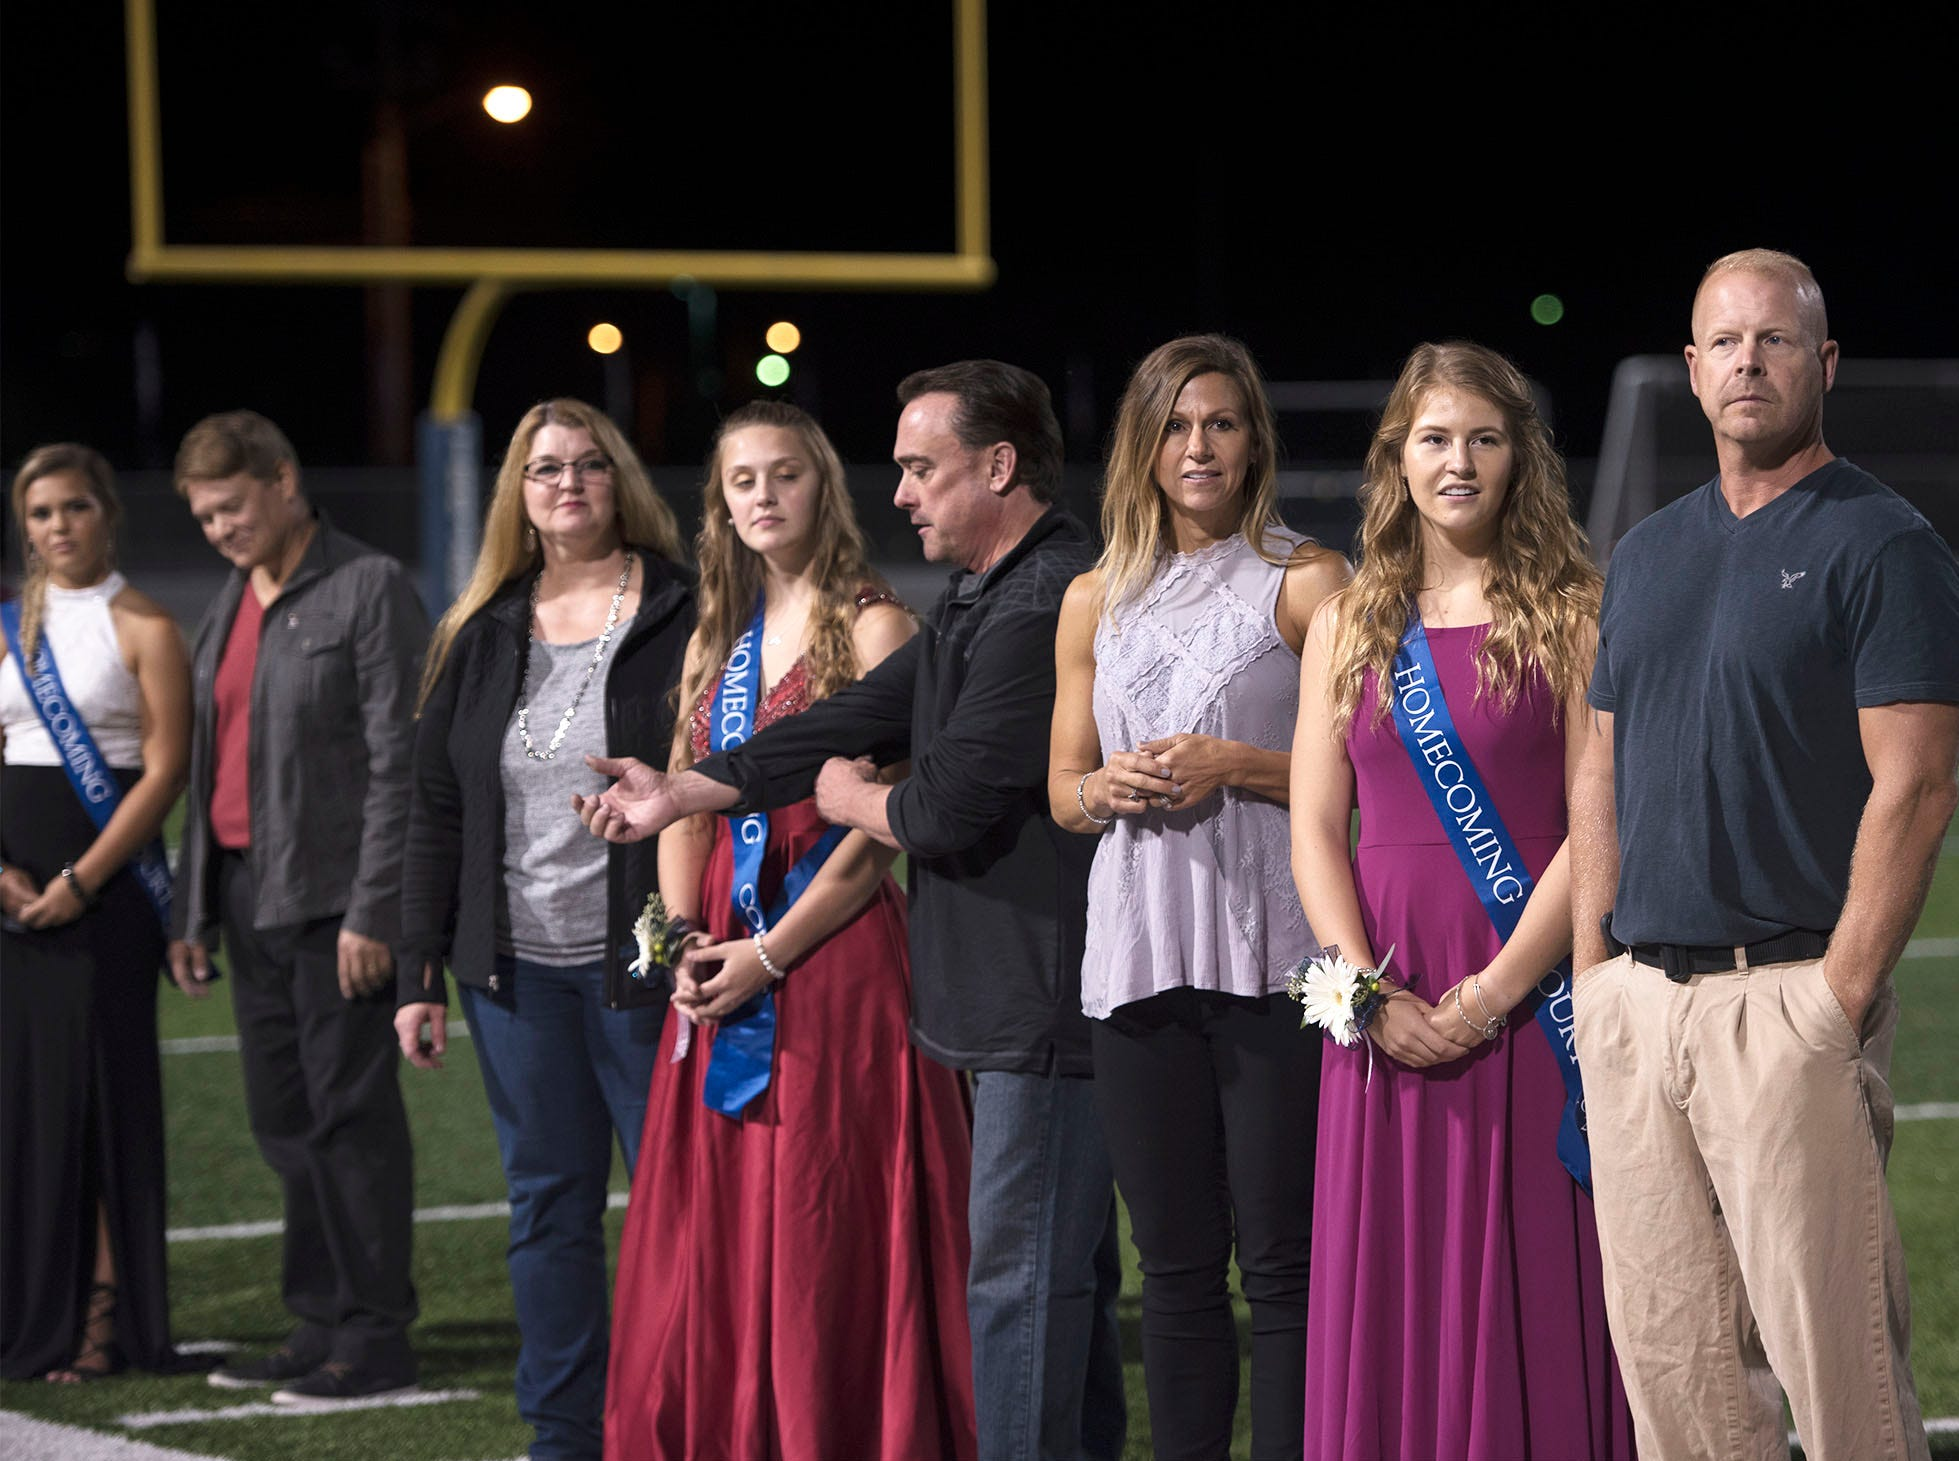 Chambersburg Trojans are 5-1 after a homecoming victory over Cumberland Valley 28-14 in PIAA football on Friday, Sept. 28, 2018.